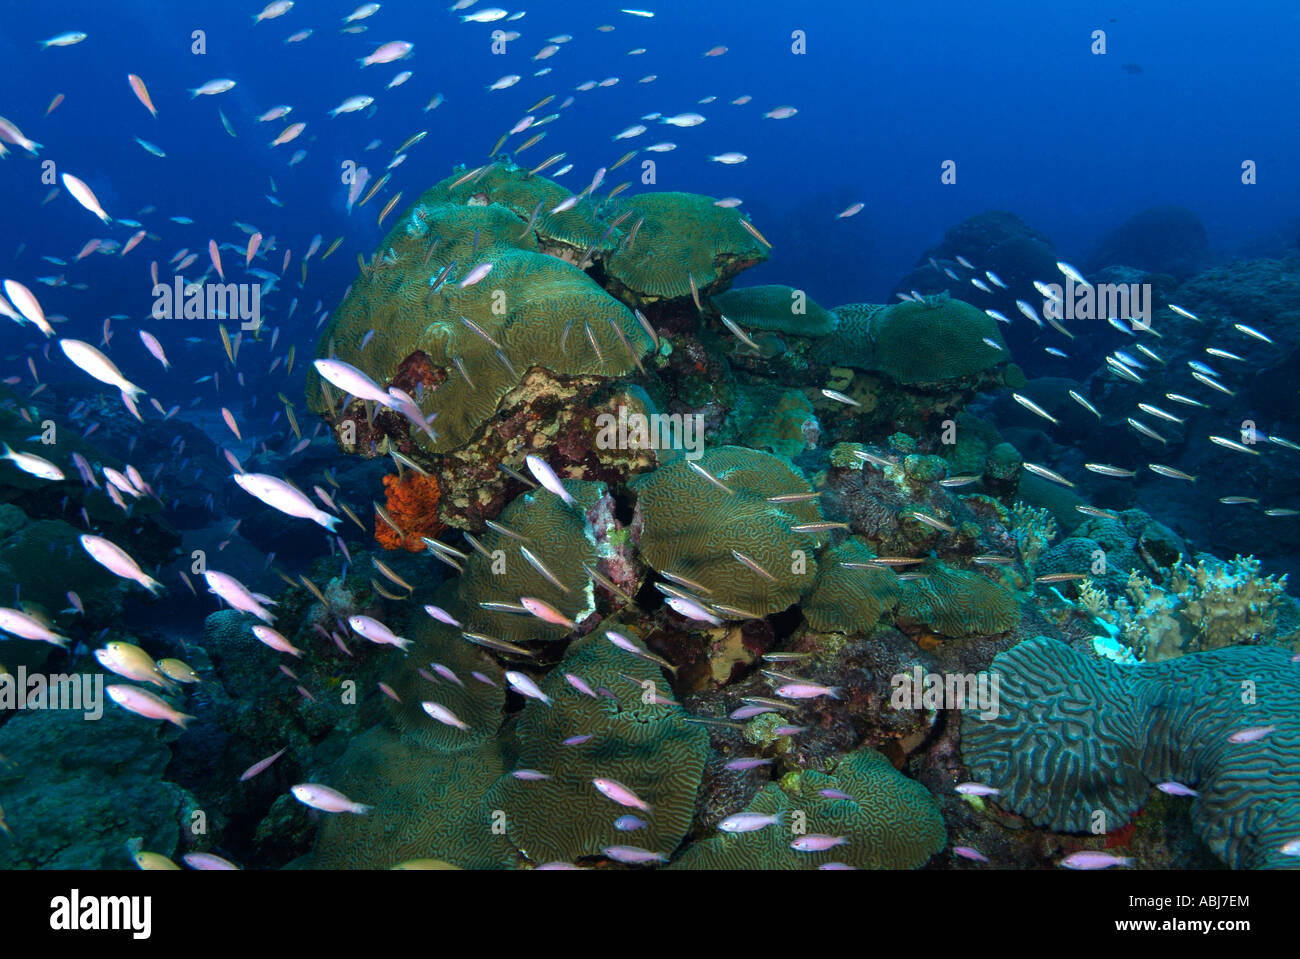 Coral Scenery In Flower Garden In The Gulf Of Mexico Off Texas Stock Photo Royalty Free Image